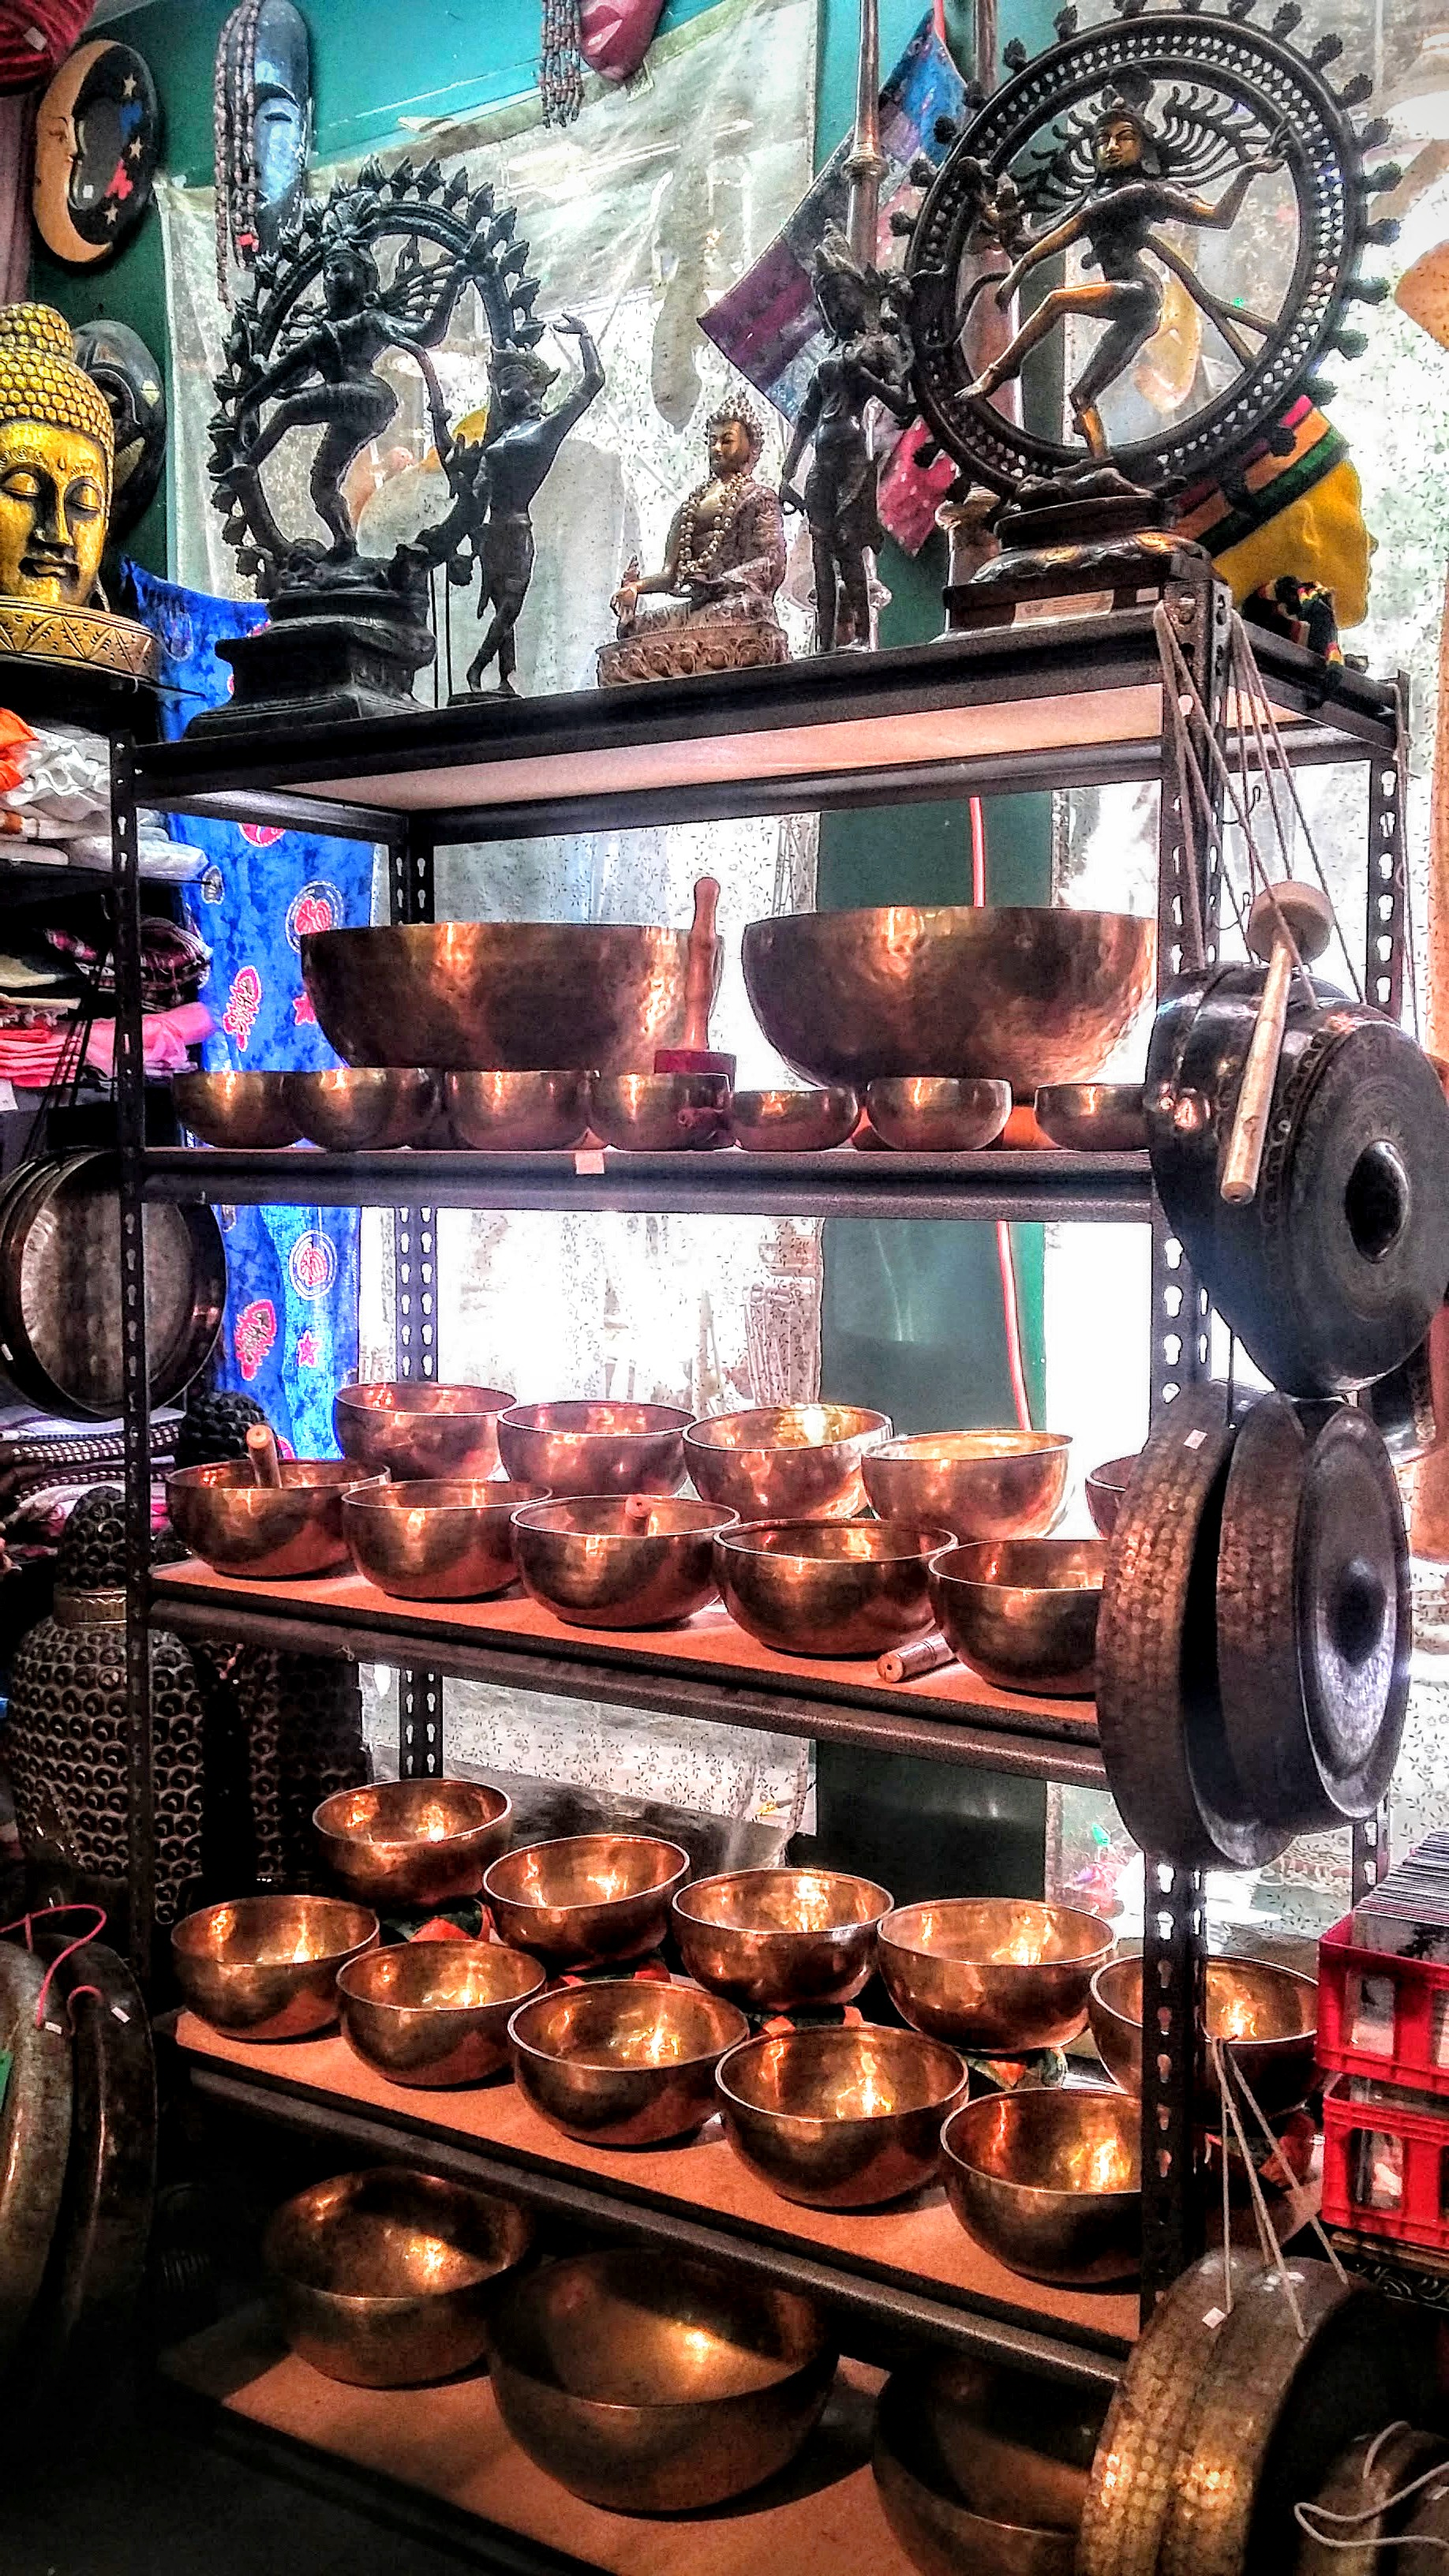 Tibetain Singing Bowls